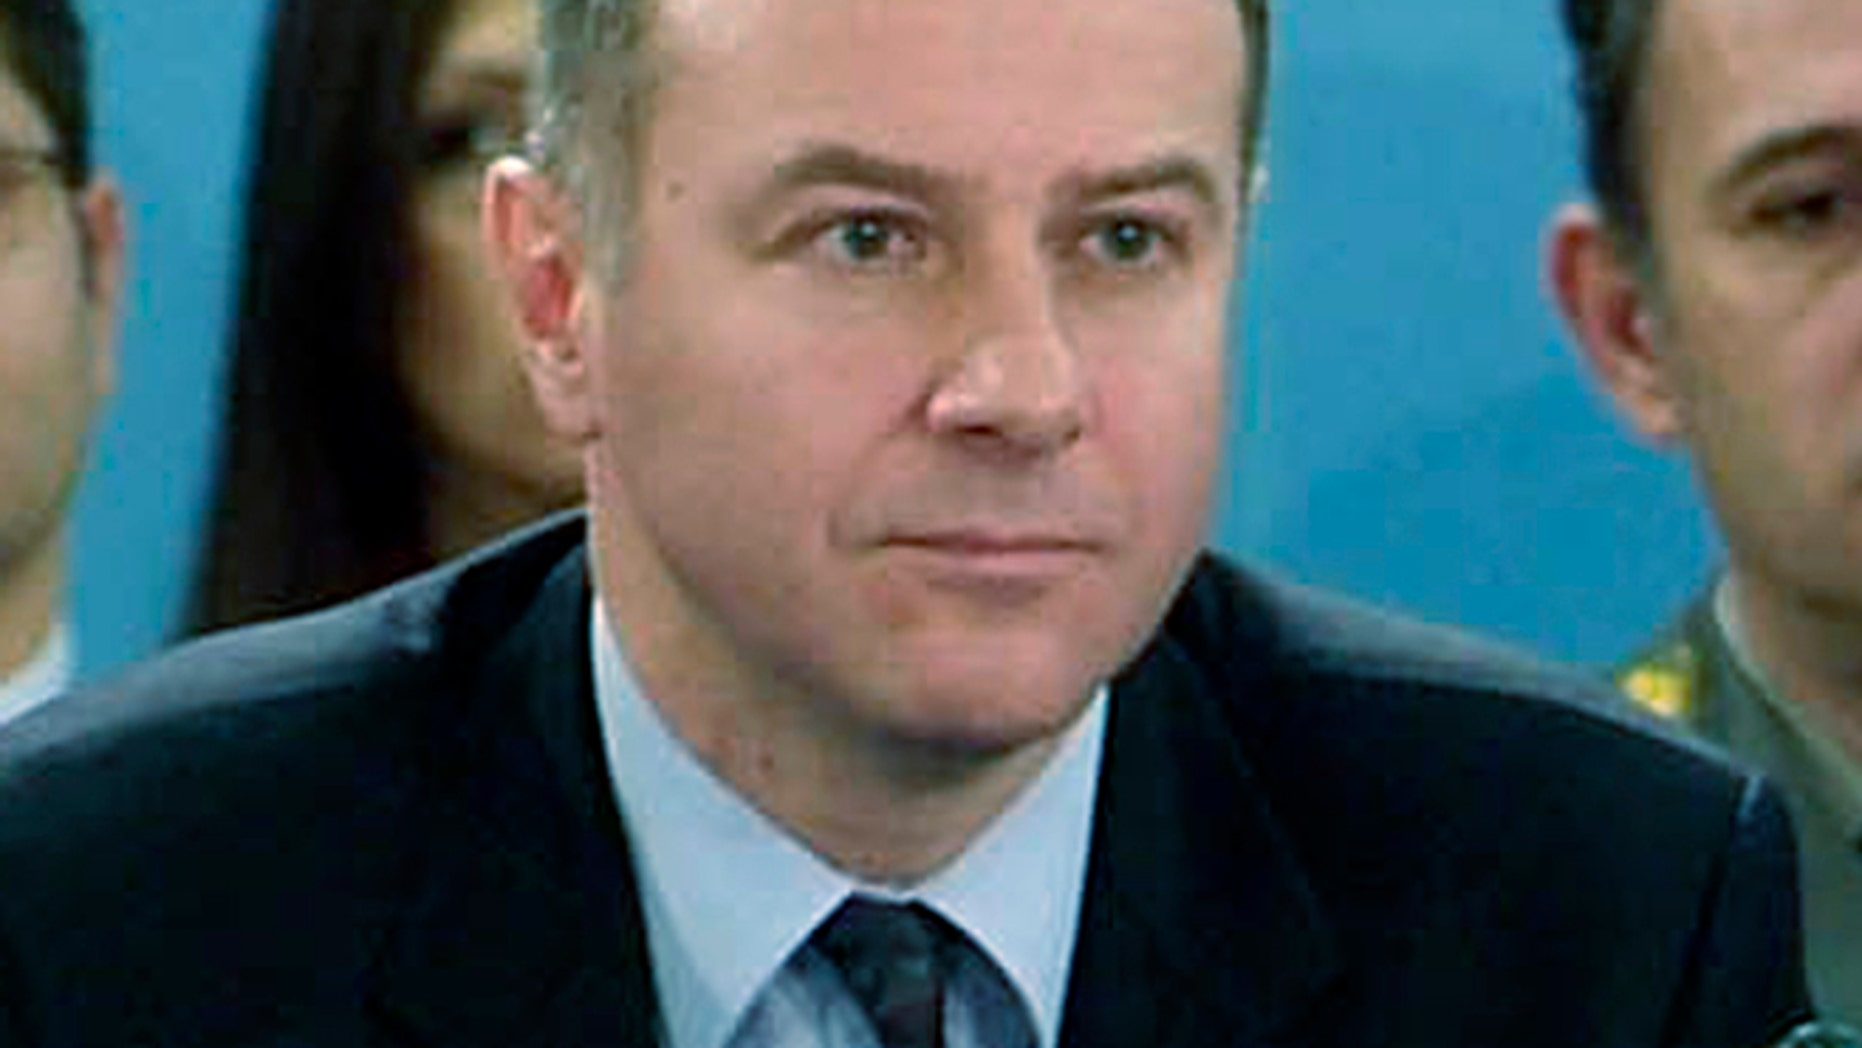 In this photo made available by NATO, in this Dec. 14, 2006 file photo, Serbia's Ambassador to NATO Branislav Milinkovic is seen during a meeting at NATO headquarters in Brussels, Belgium.